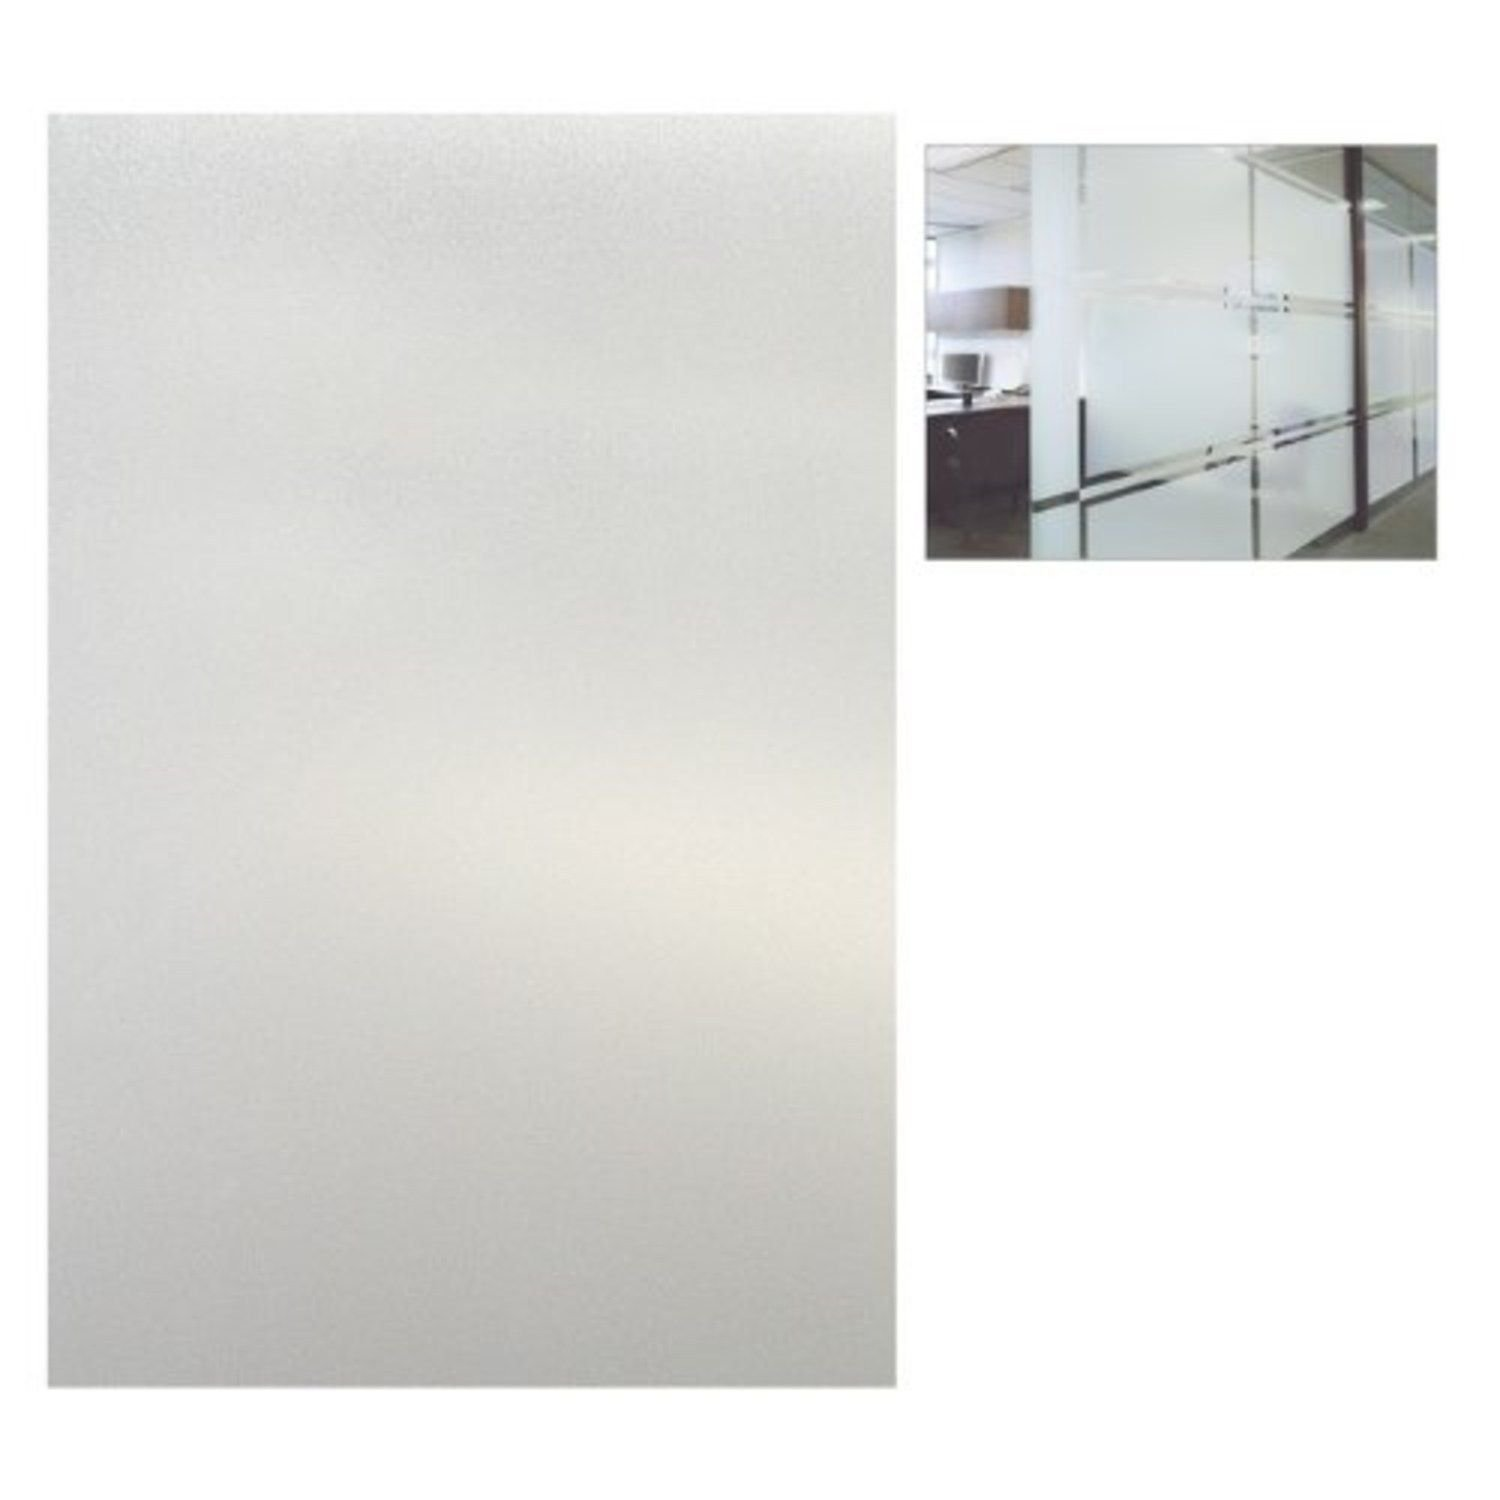 Etched Glass Sidelights Window Film 12-by-83-Inch ,,#G434G14 1T4G3484TYG472909